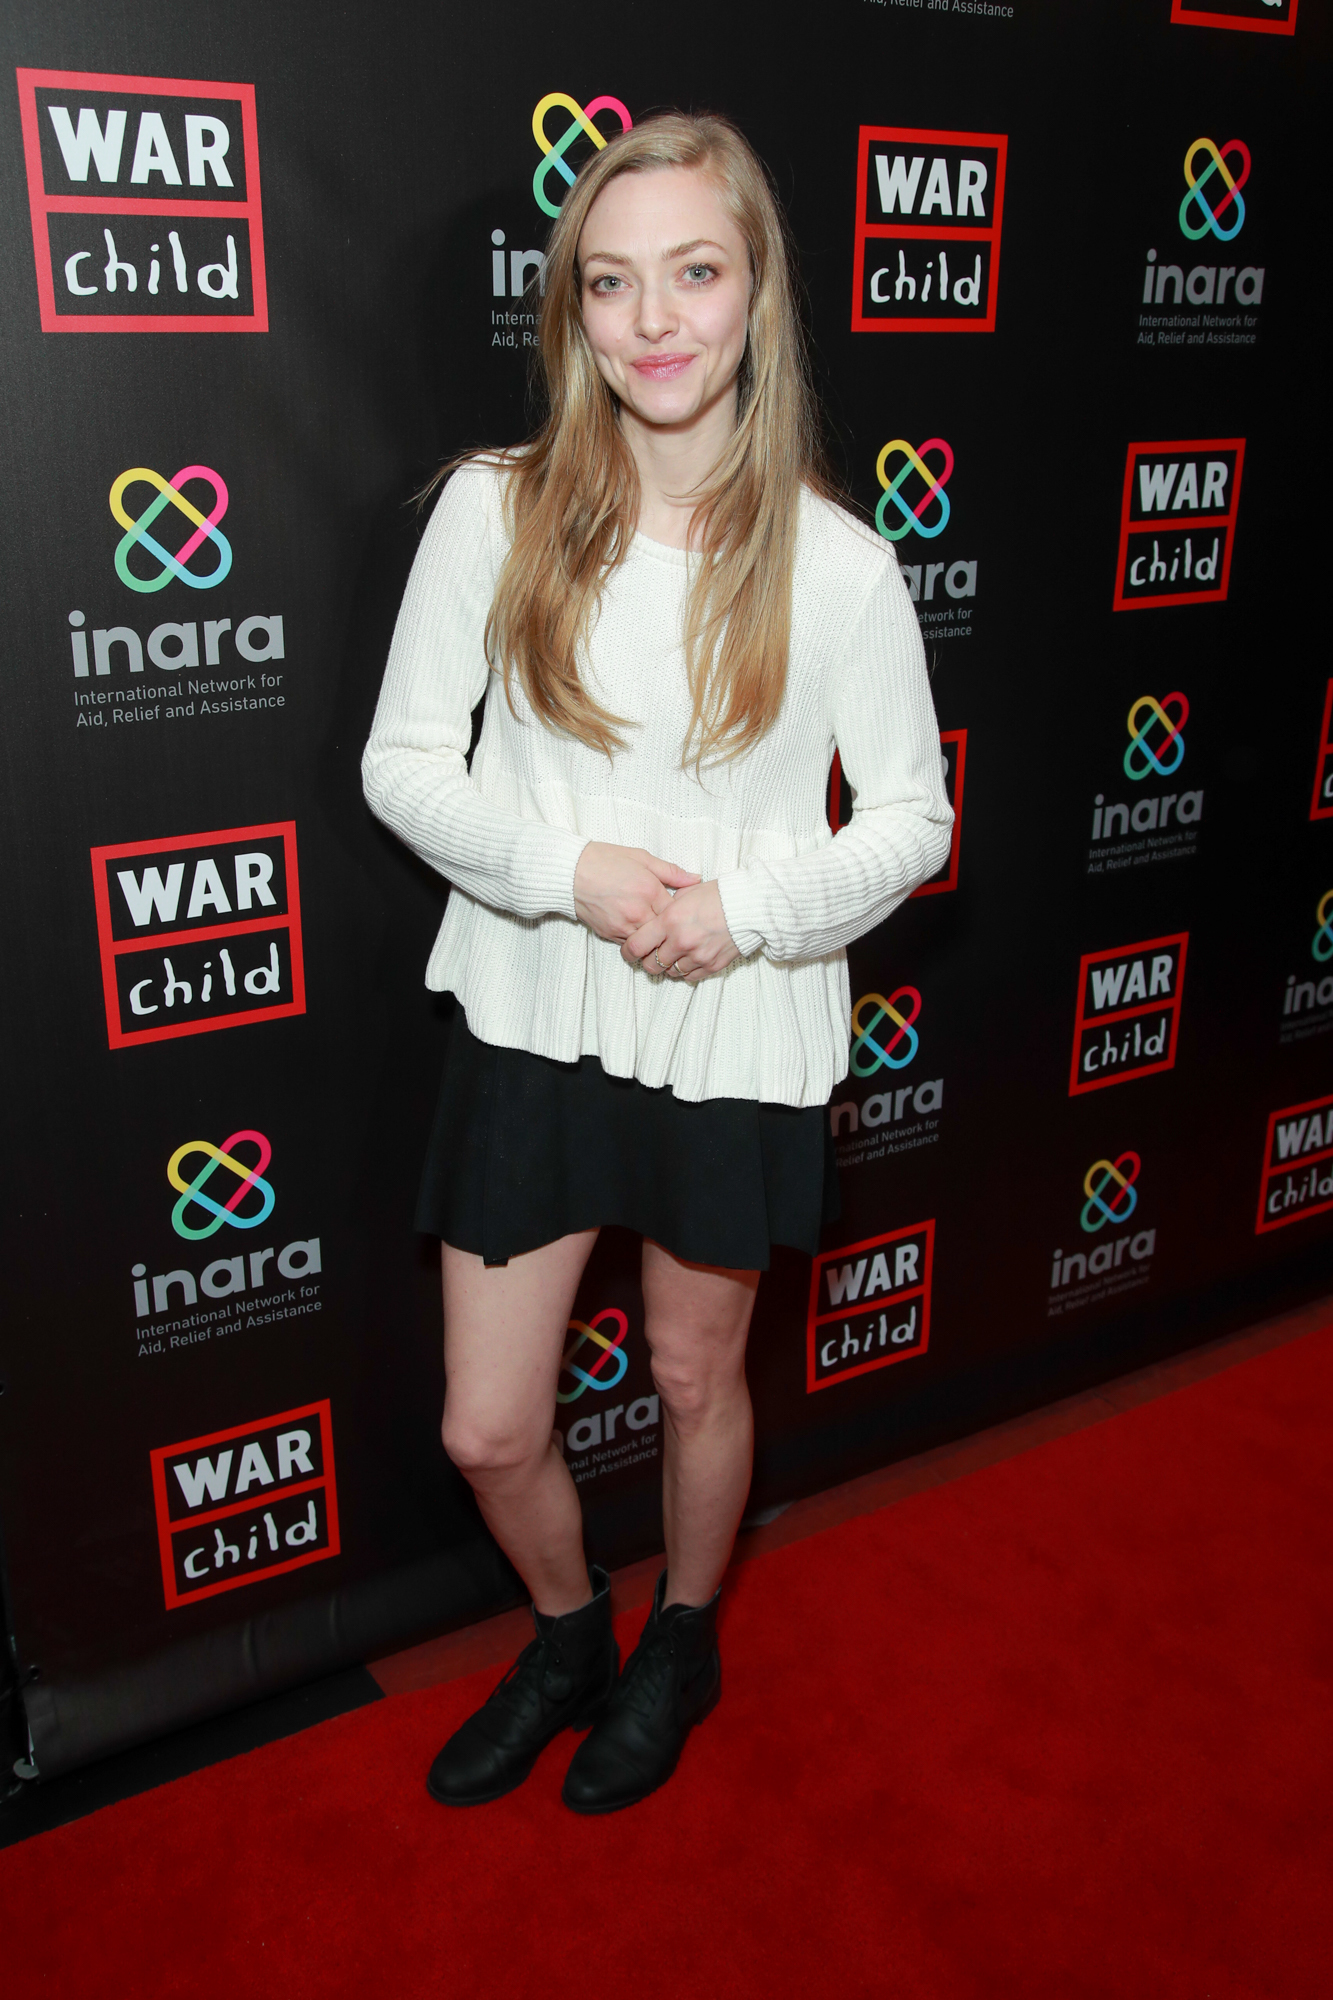 Amanda Seyfried attends the Good For A Laugh comedy fundraiser to support children affected by war at Largo At The Coronet in Los Angeles on March 01, 2019.